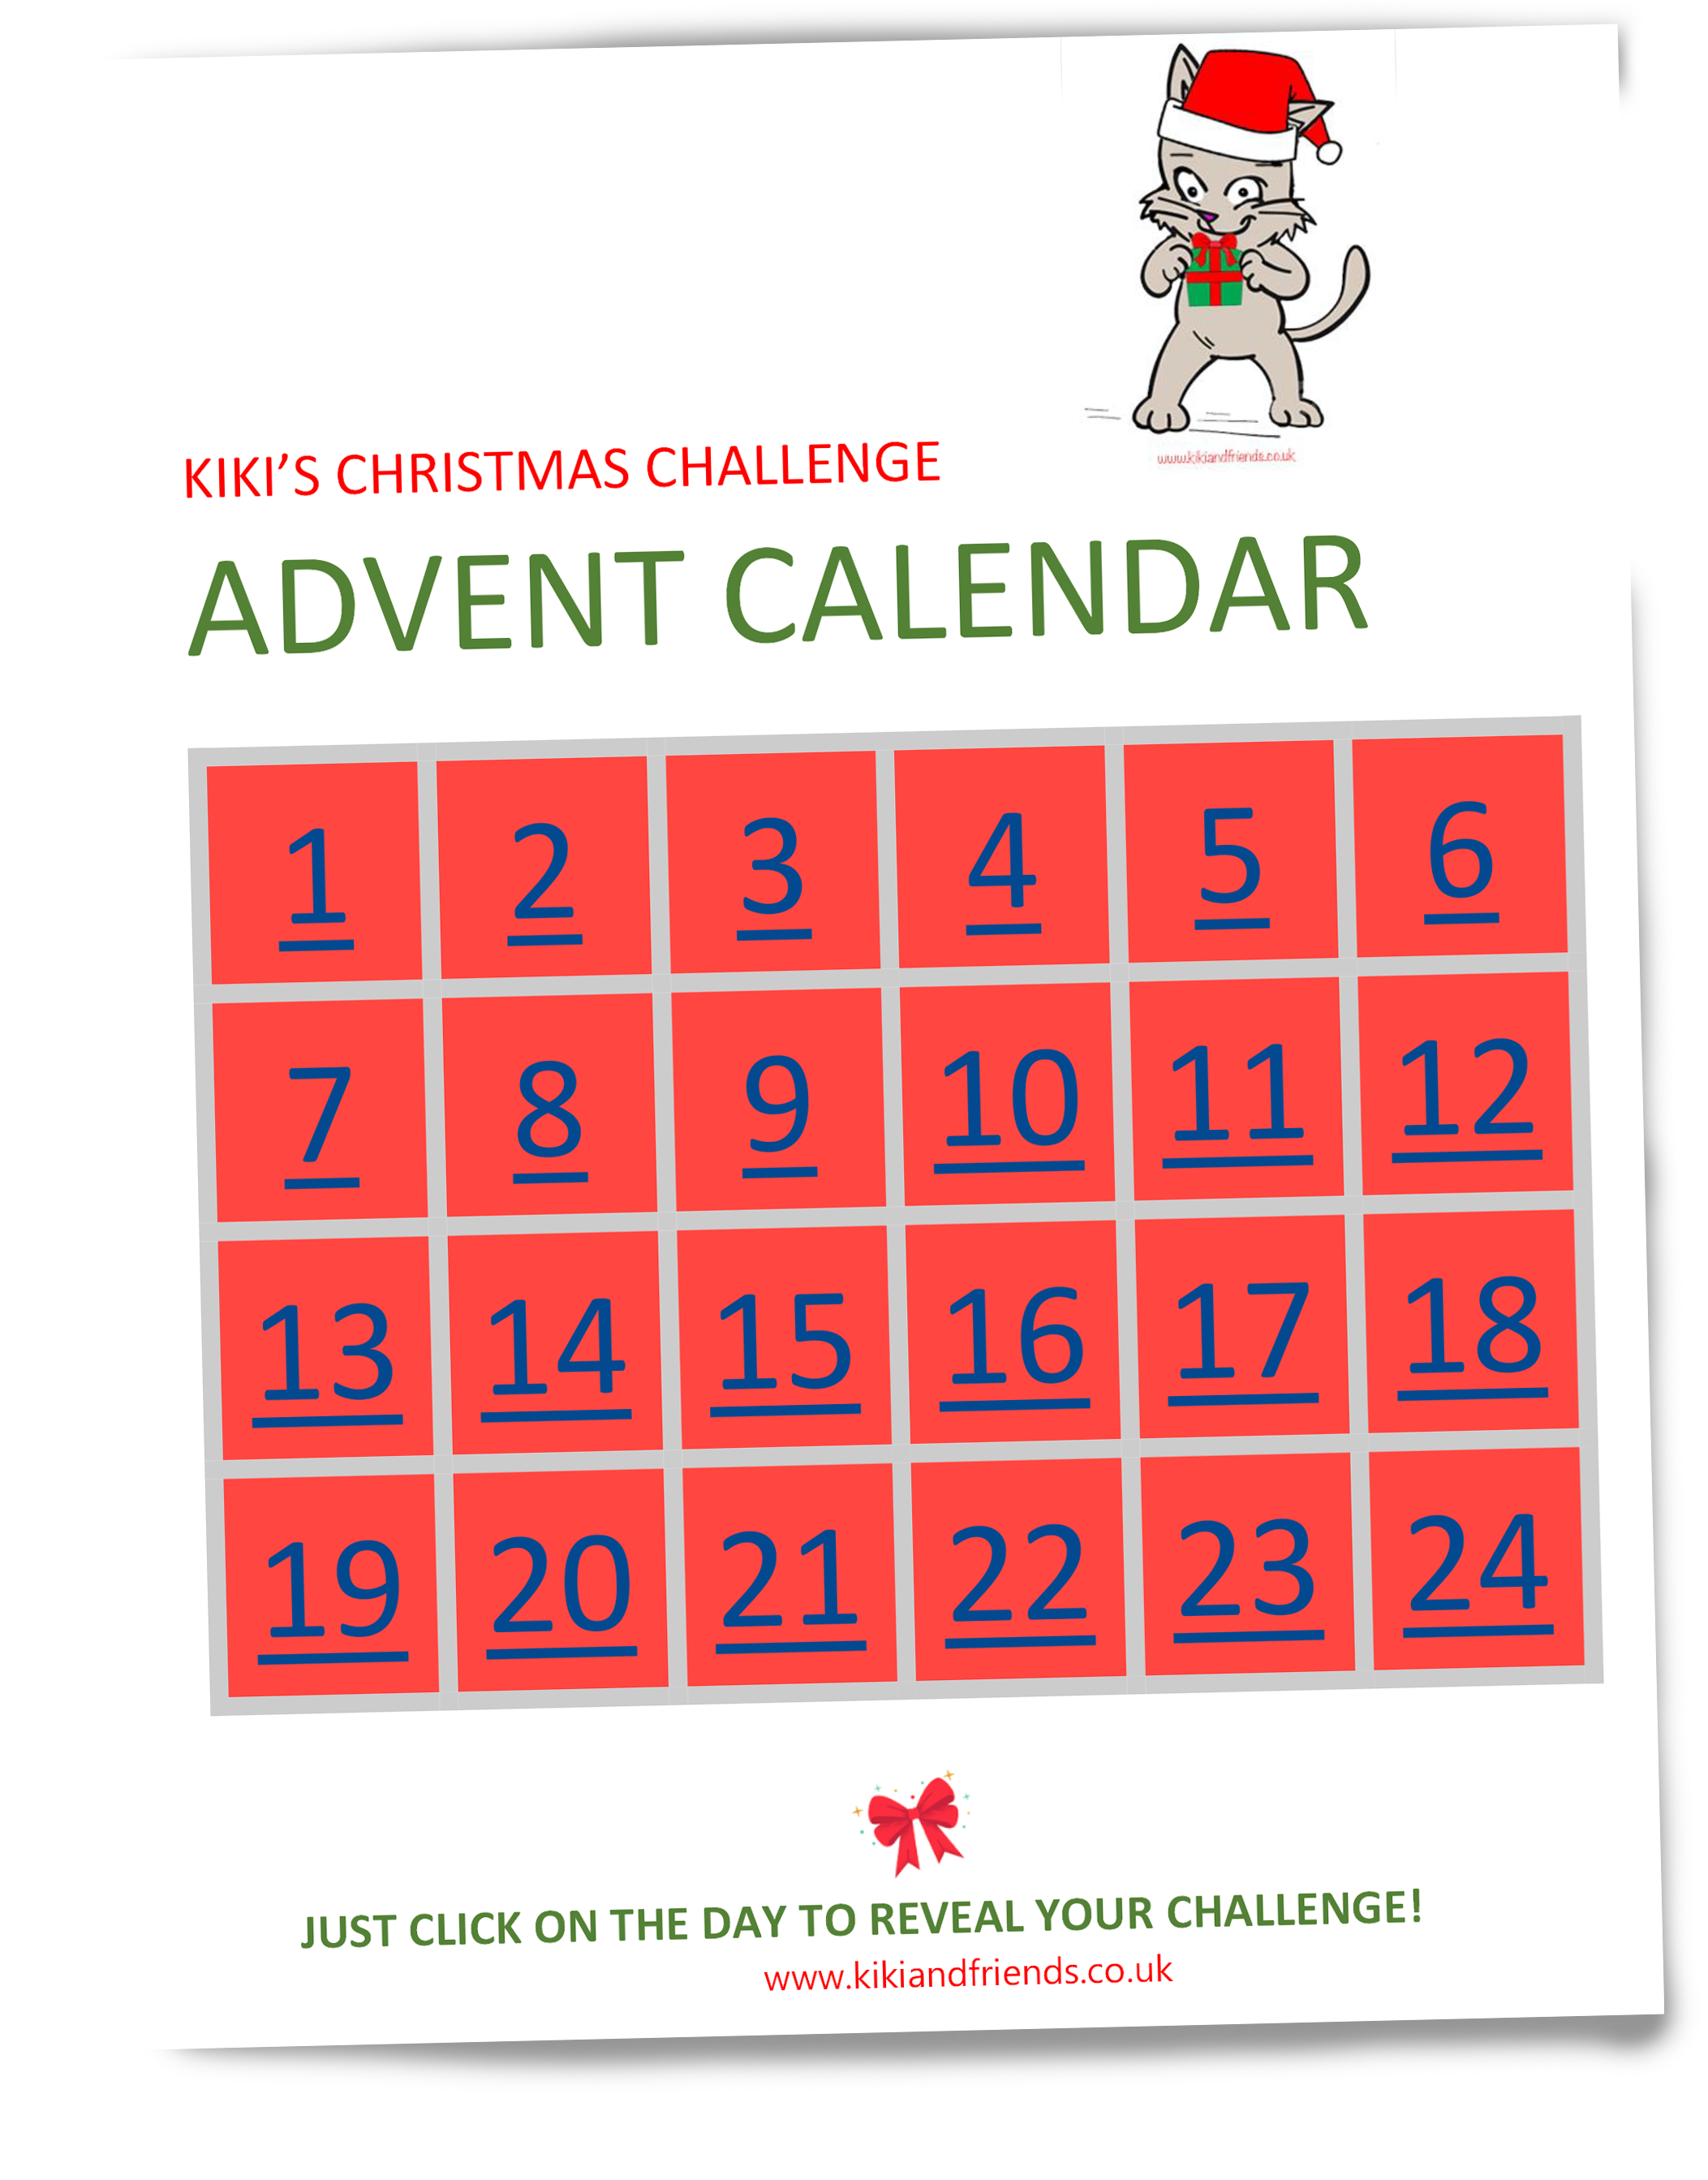 Kiki's Christmas Challenge - Free Advent Calendar packed with fun challenges and activities. Ideal for children under 10... and certainly better than chocolates. Spreading a little joy after a difficult year x